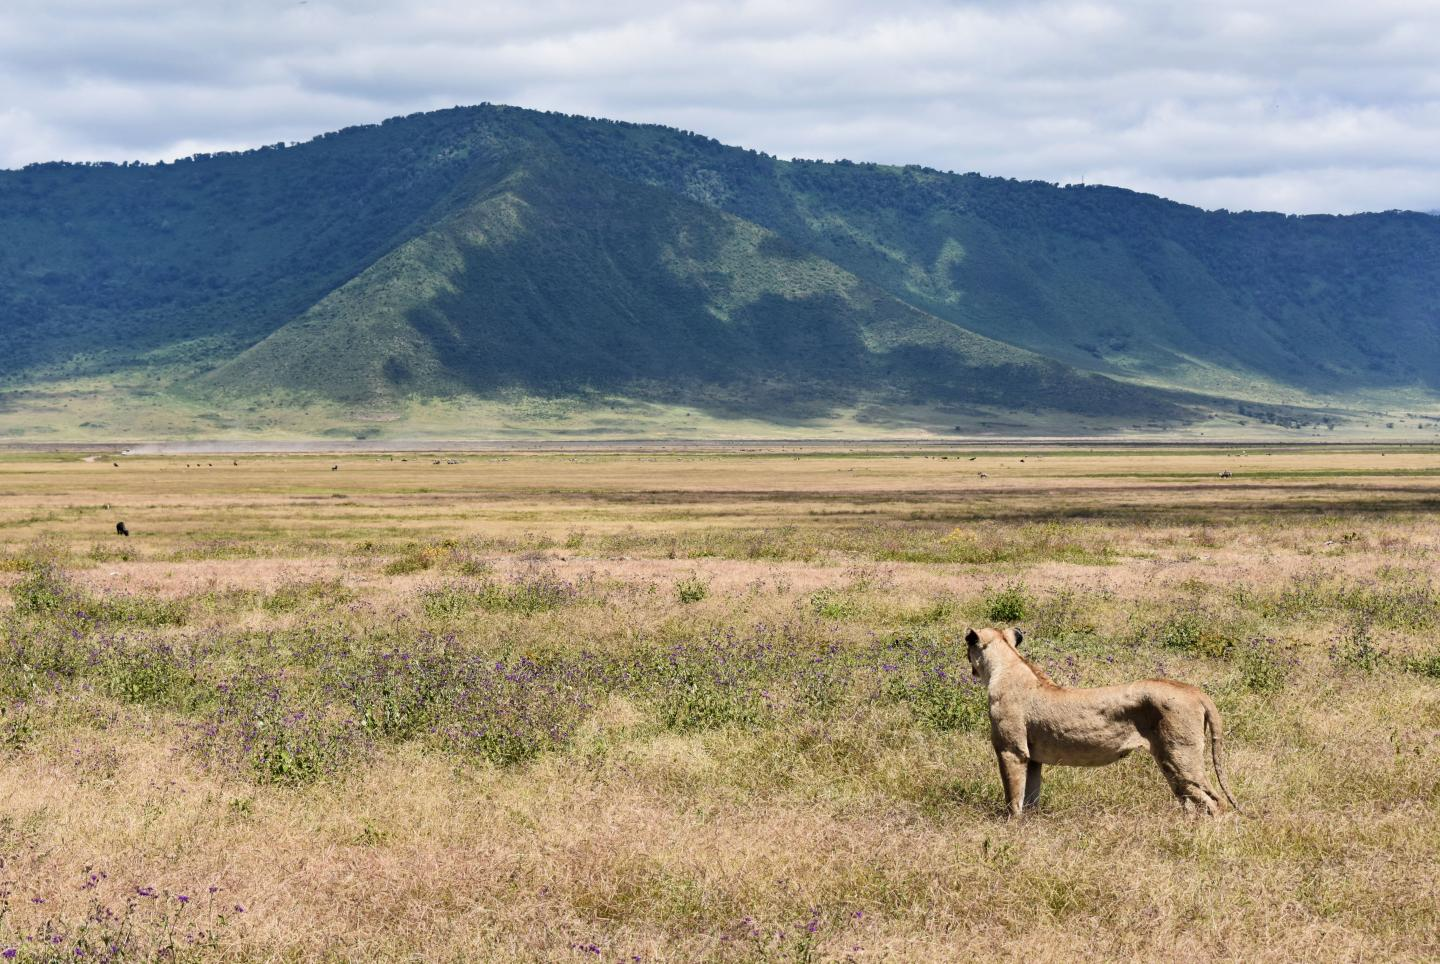 A lionness in Ngorongoro Crater